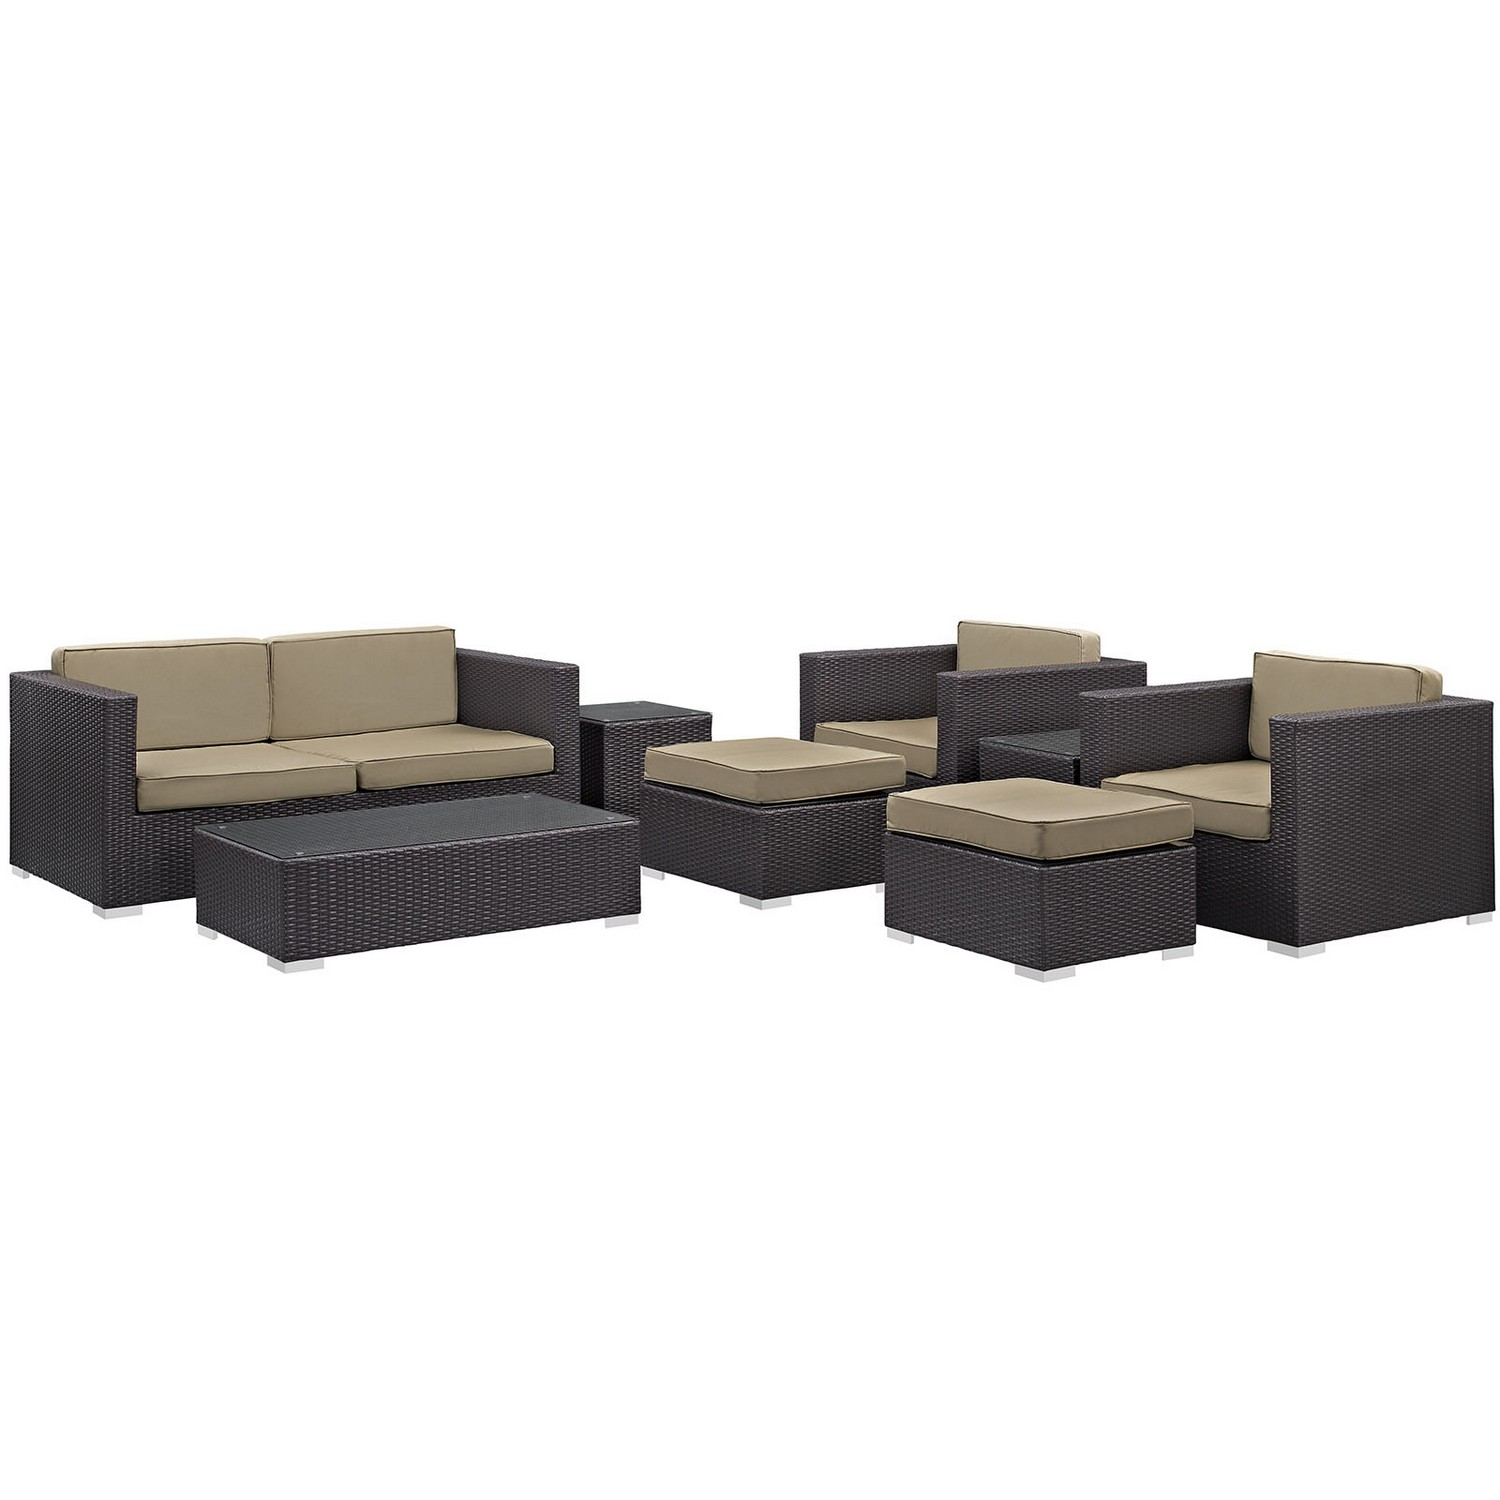 Modway Venice 8 Piece Outdoor Patio Sofa Set - Espresso/Mocha